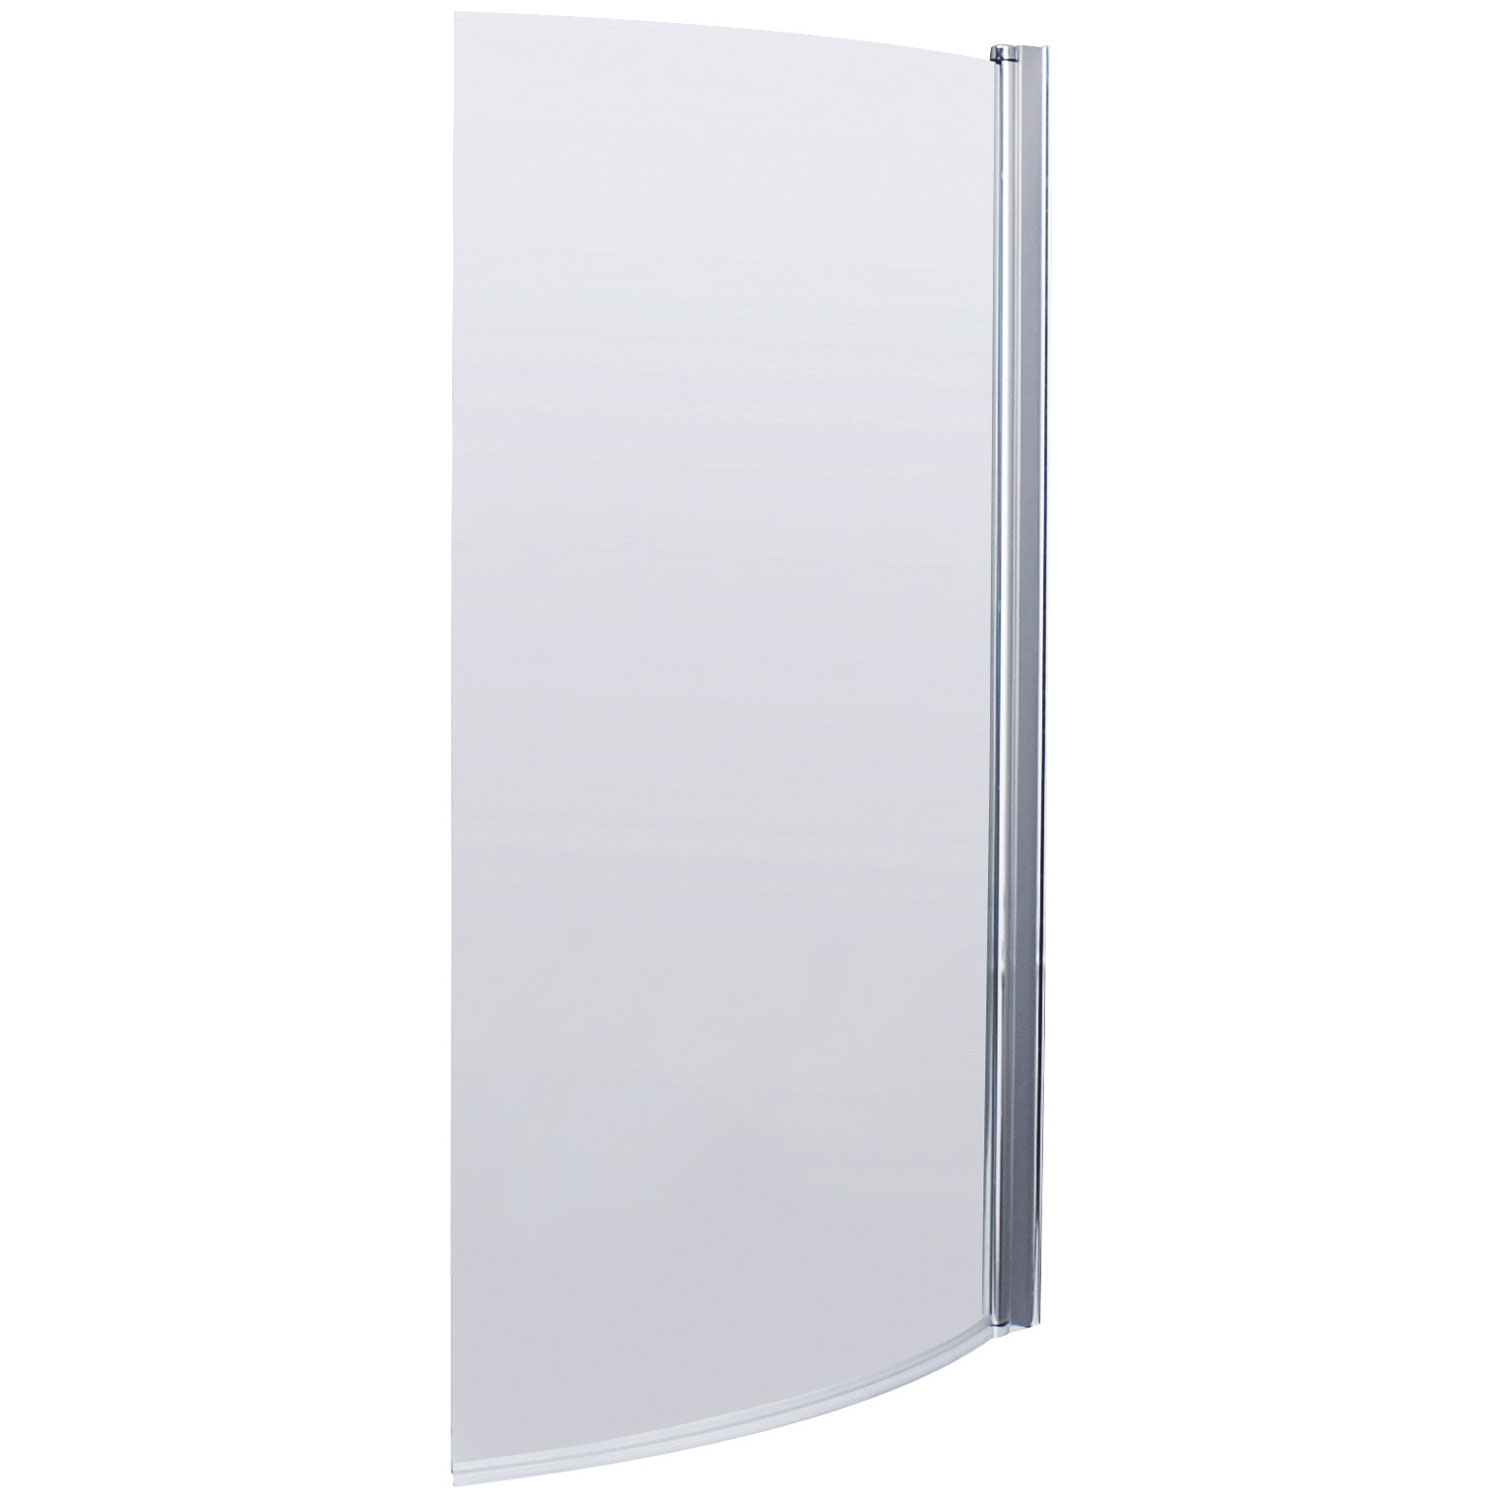 Premier B Shaped Shower Bath Screen, 1435mm High X 850 870mm Wide,